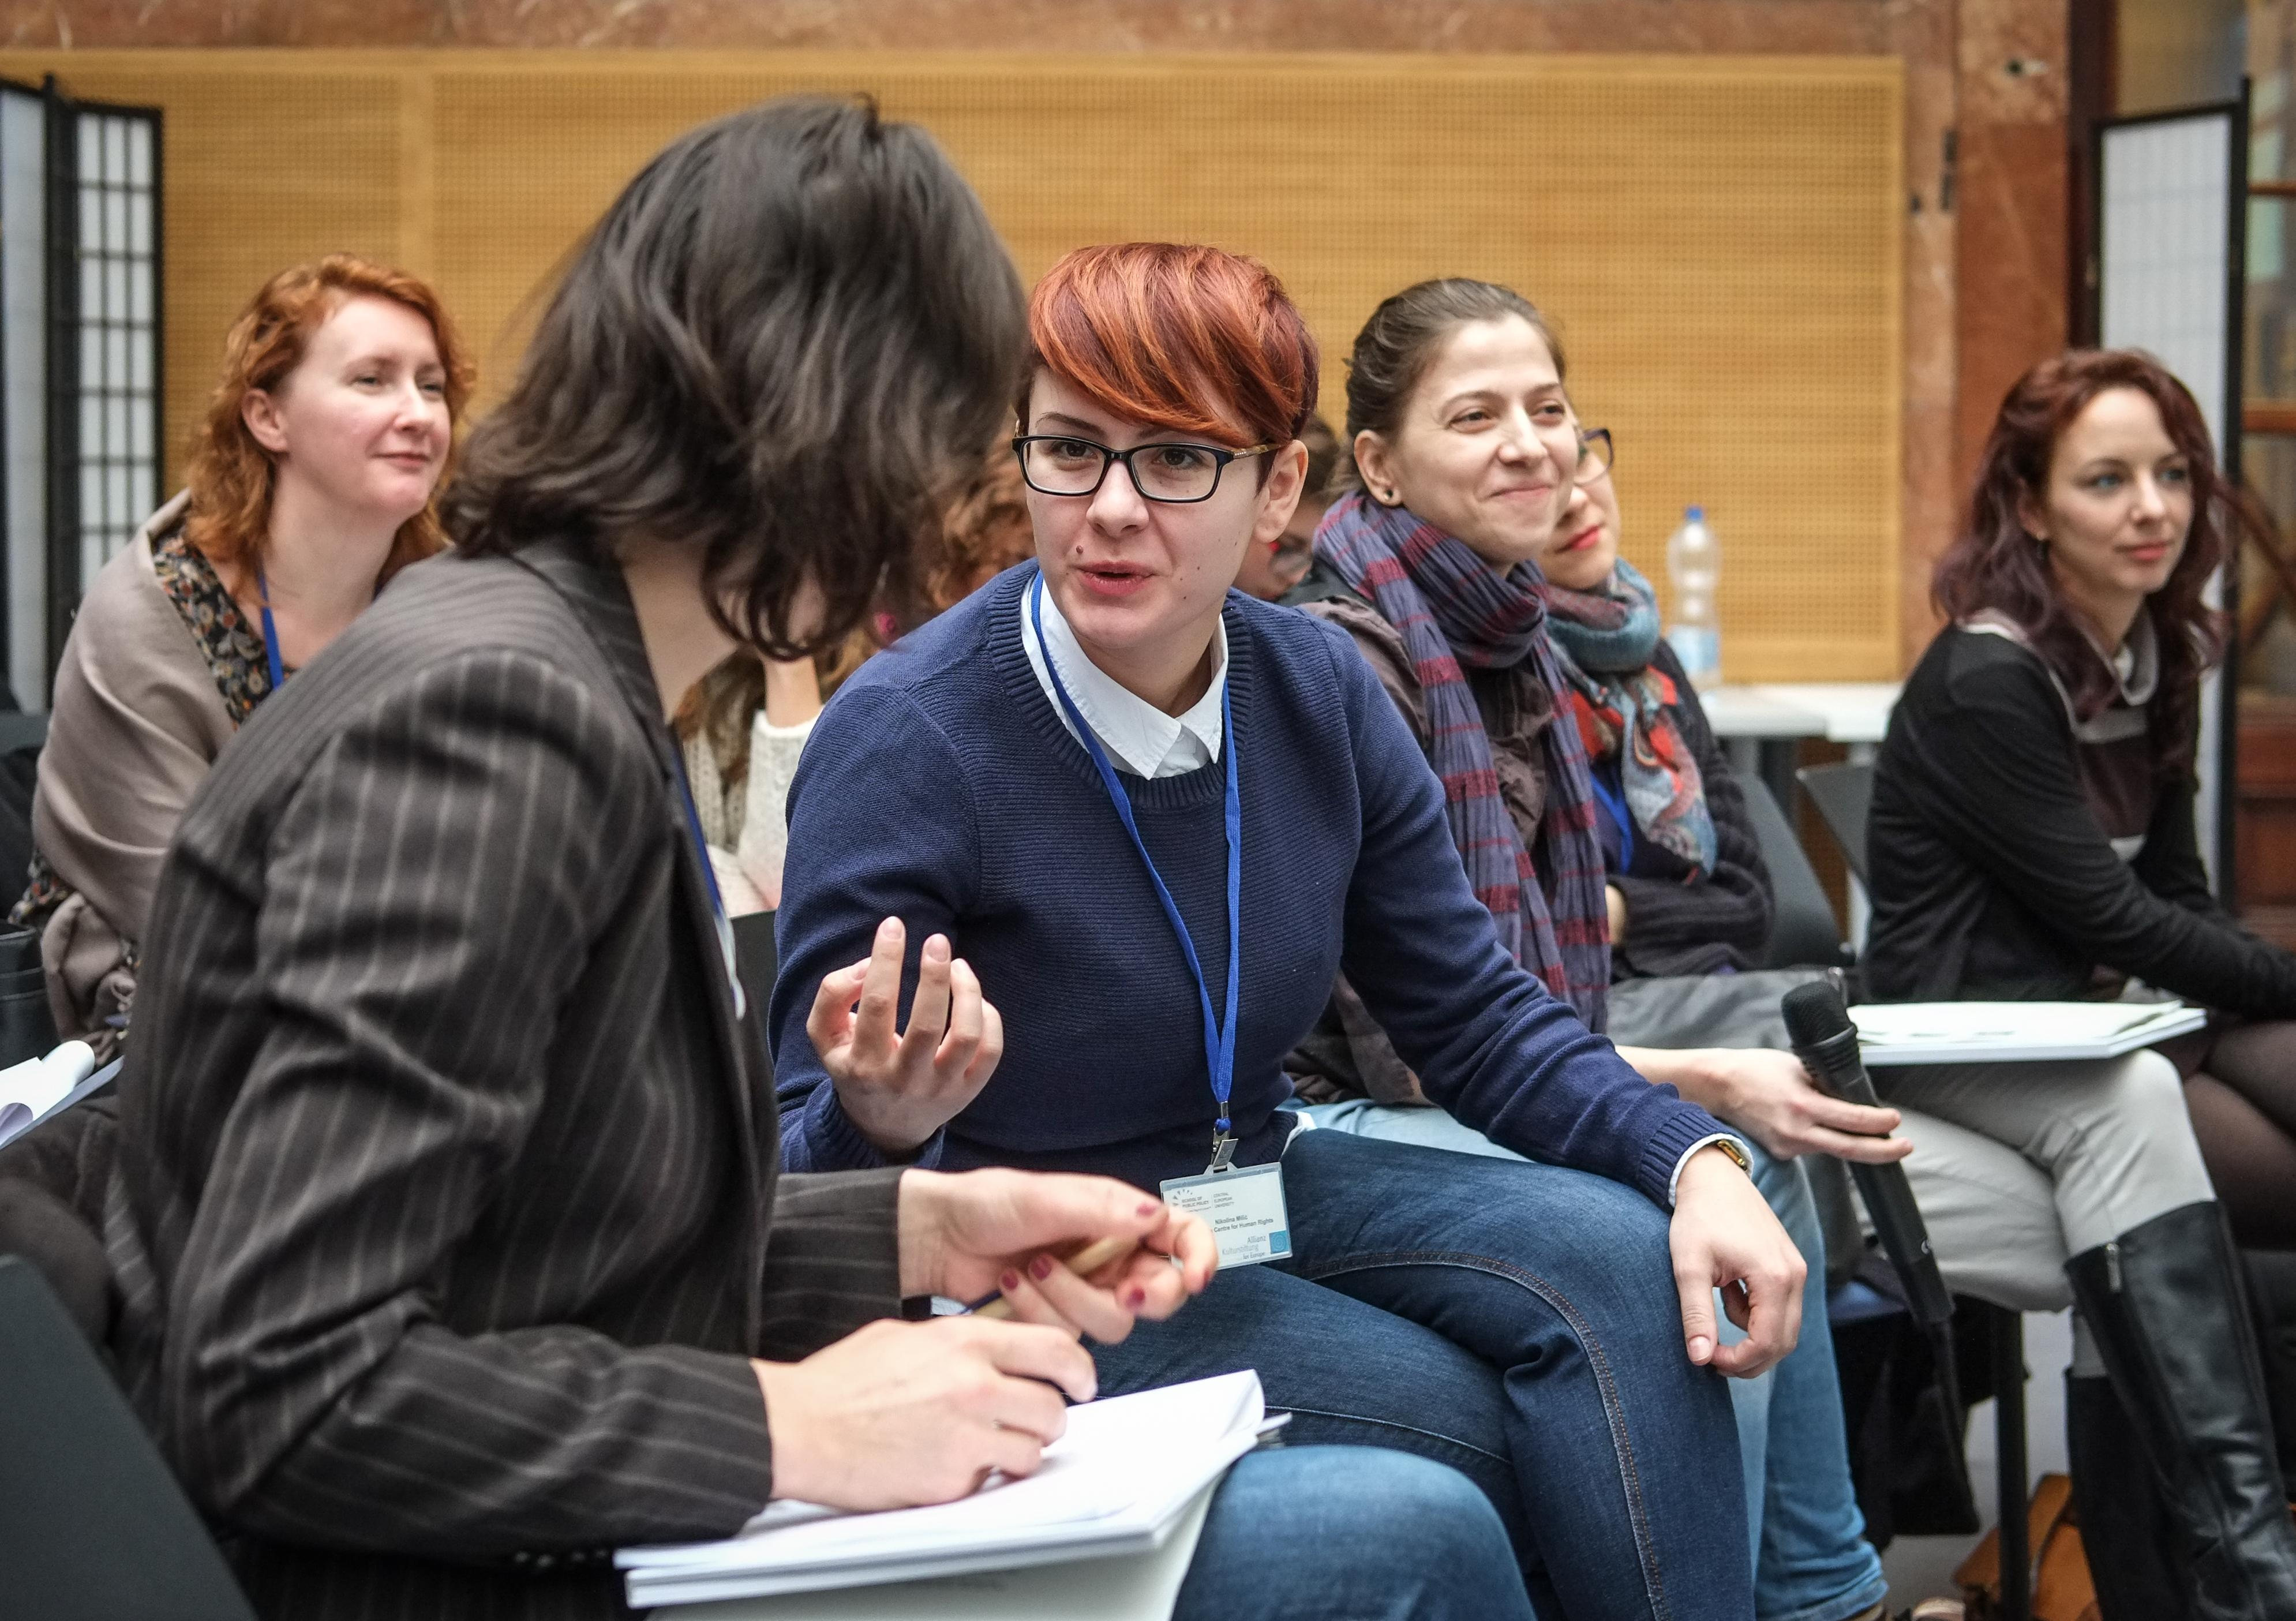 Participants discuss refugee aid in Central and Eastern Europe at the School of Public Policy at CEU. Photo: SPP/Stefan Roch